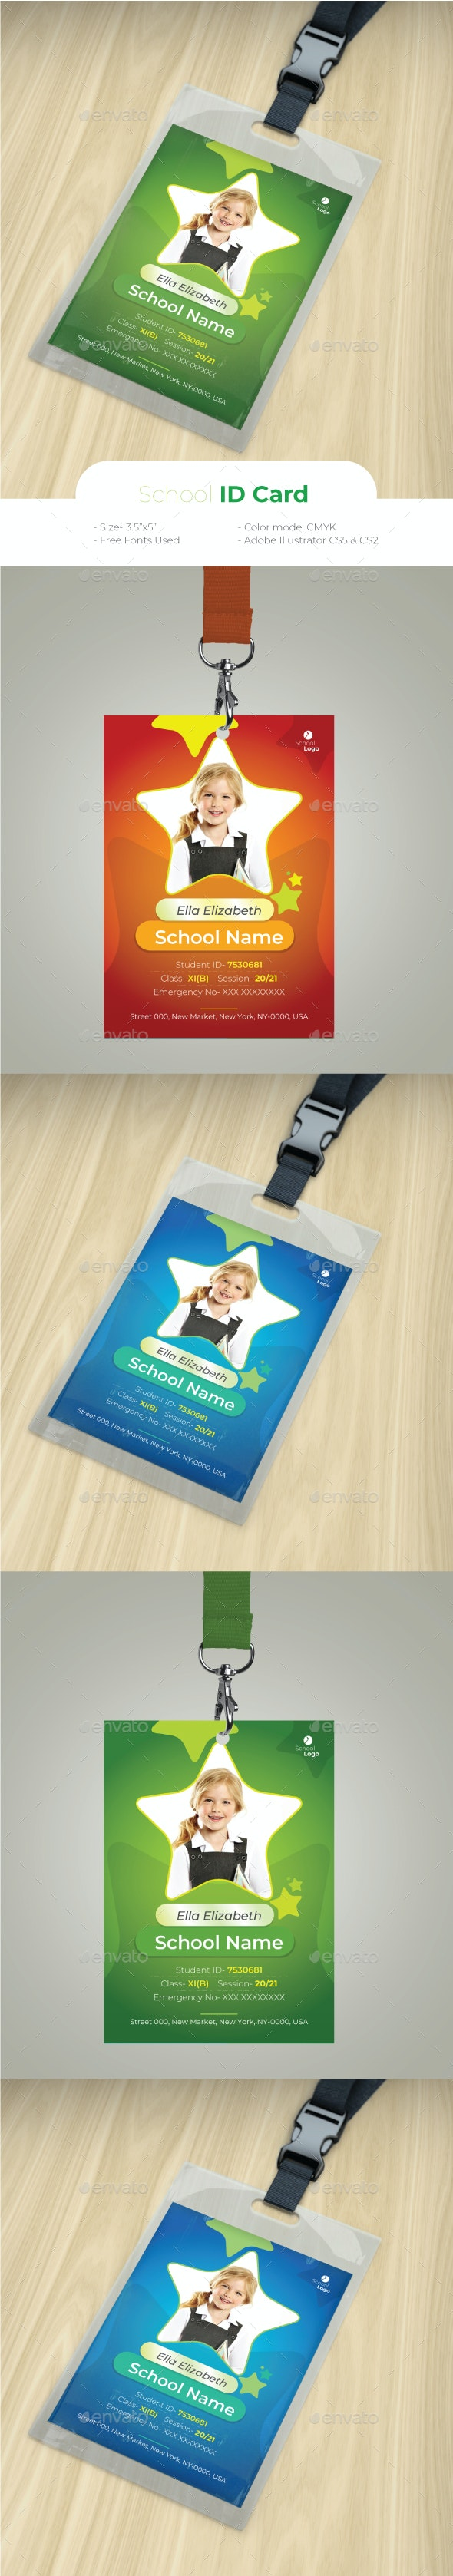 School ID Card by design_station | GraphicRiver